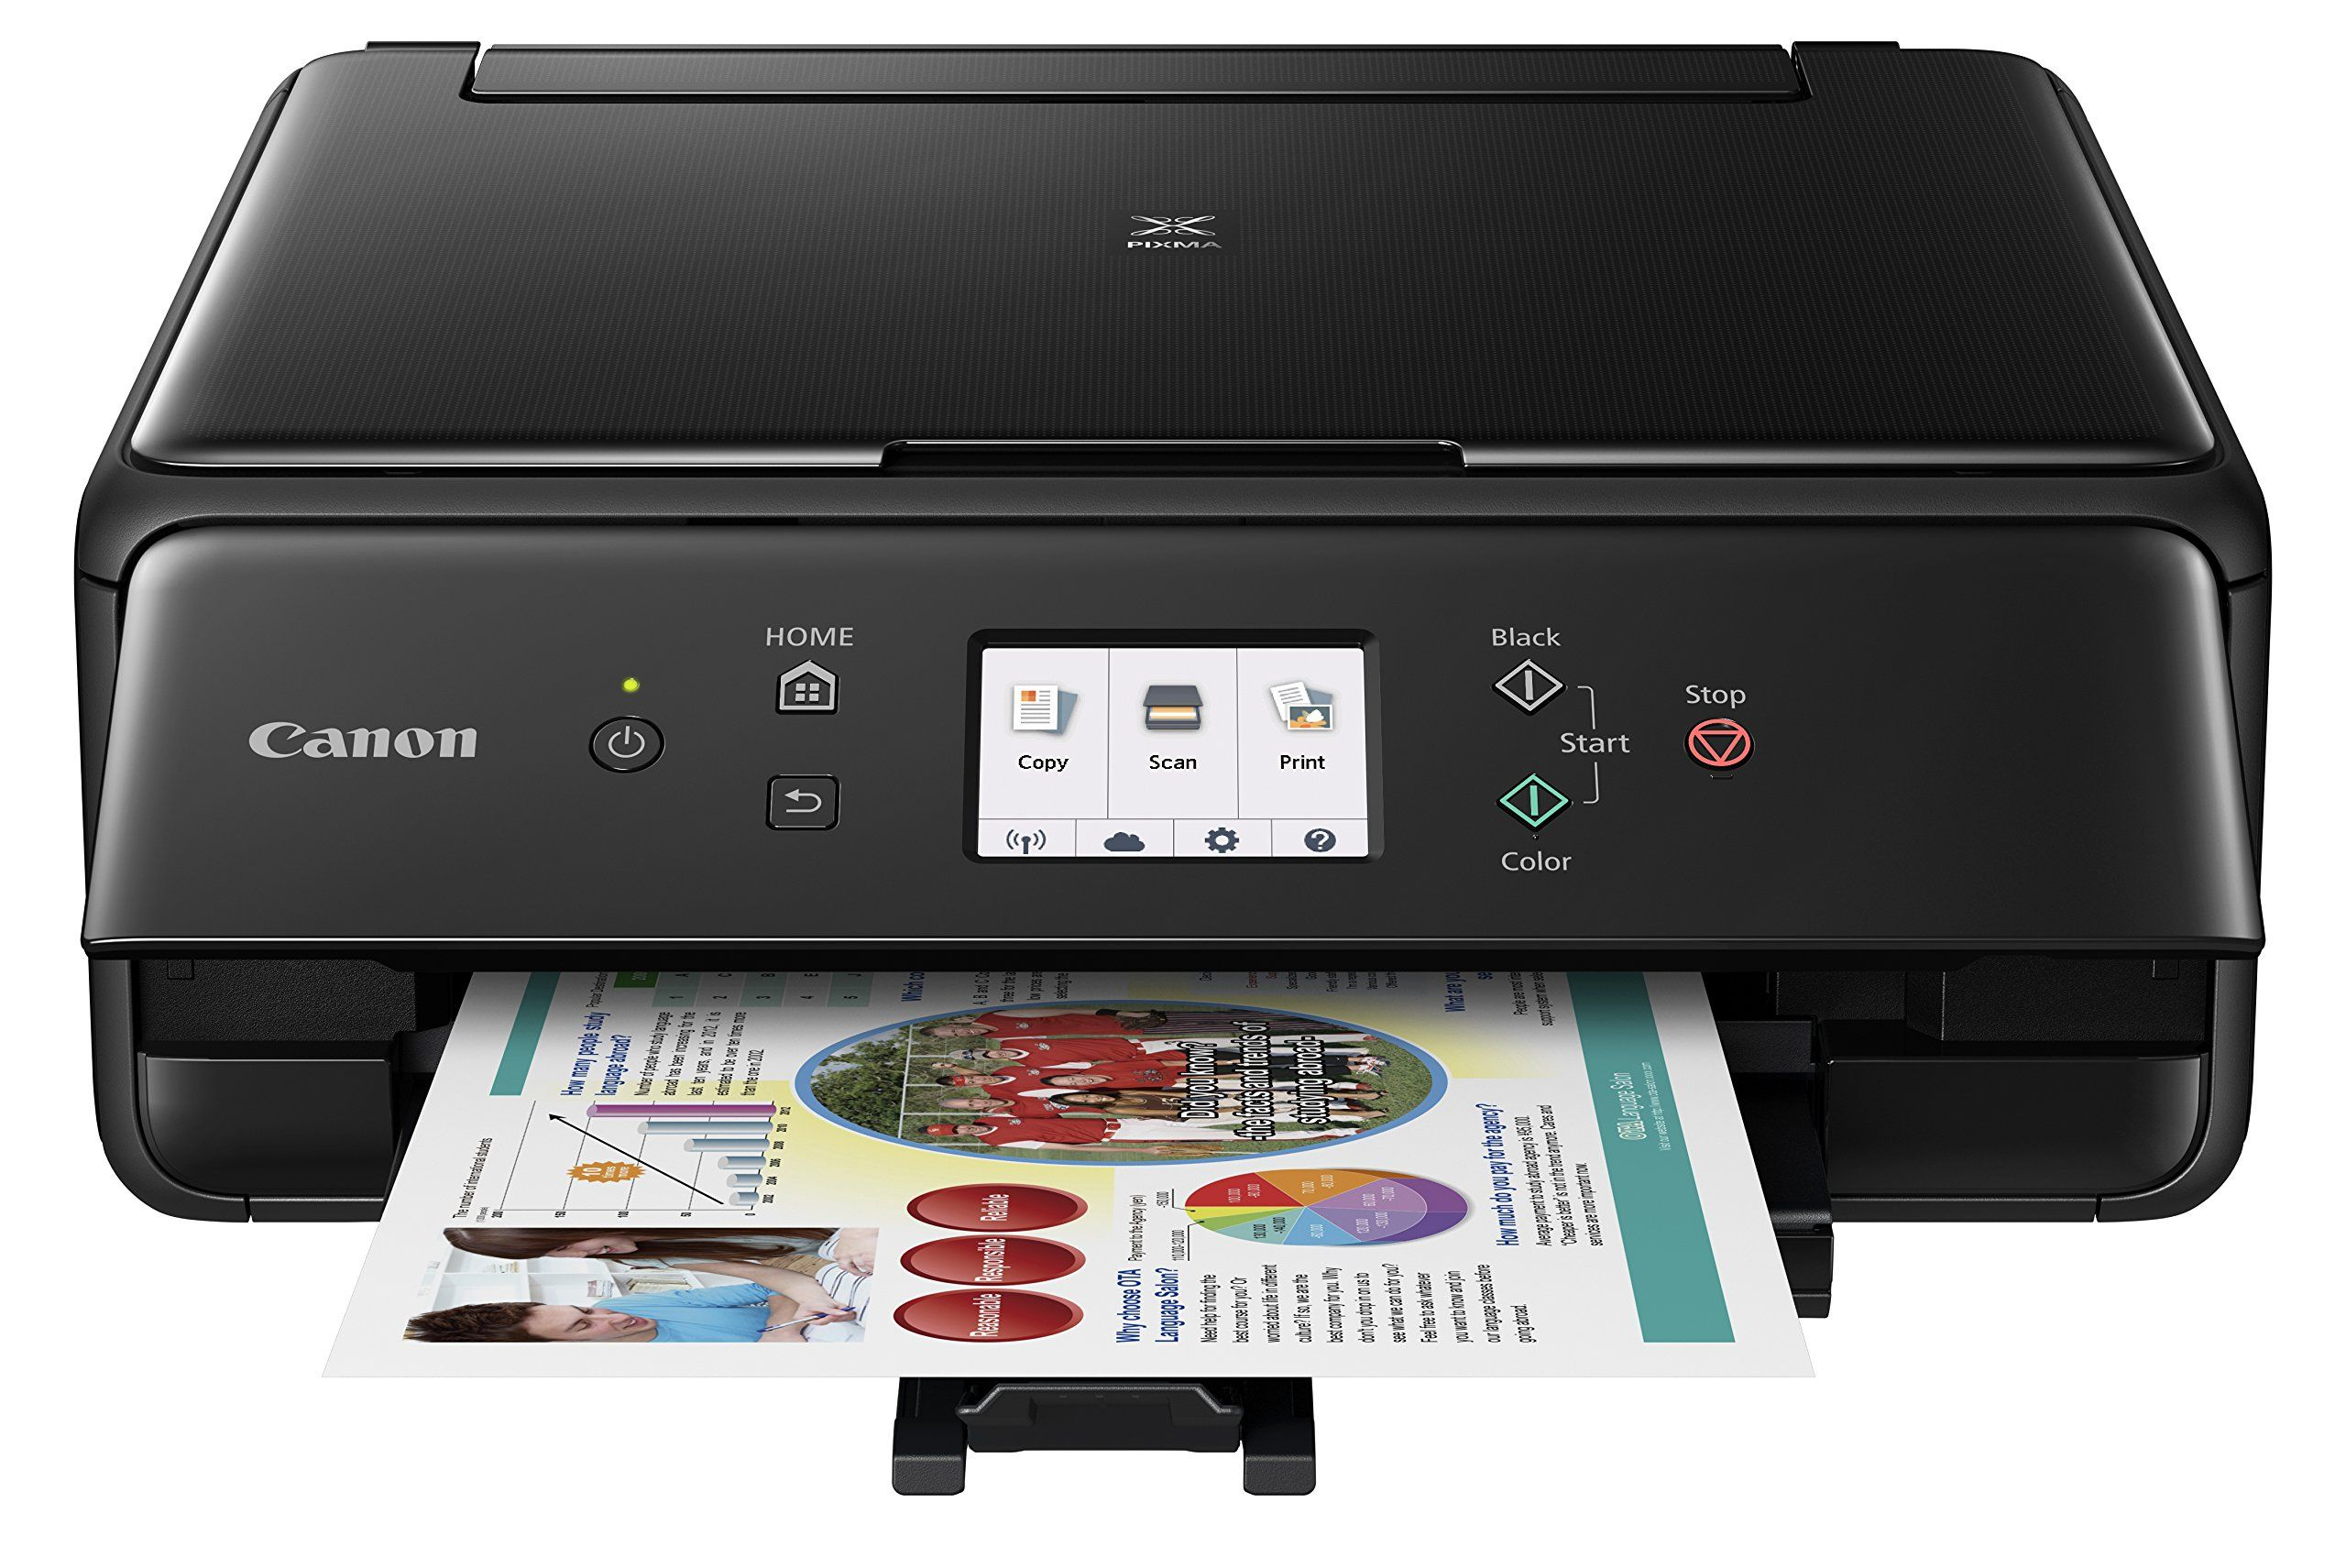 Canon Compact TS6020 Wireless Home Inkjet All-in-One Printer